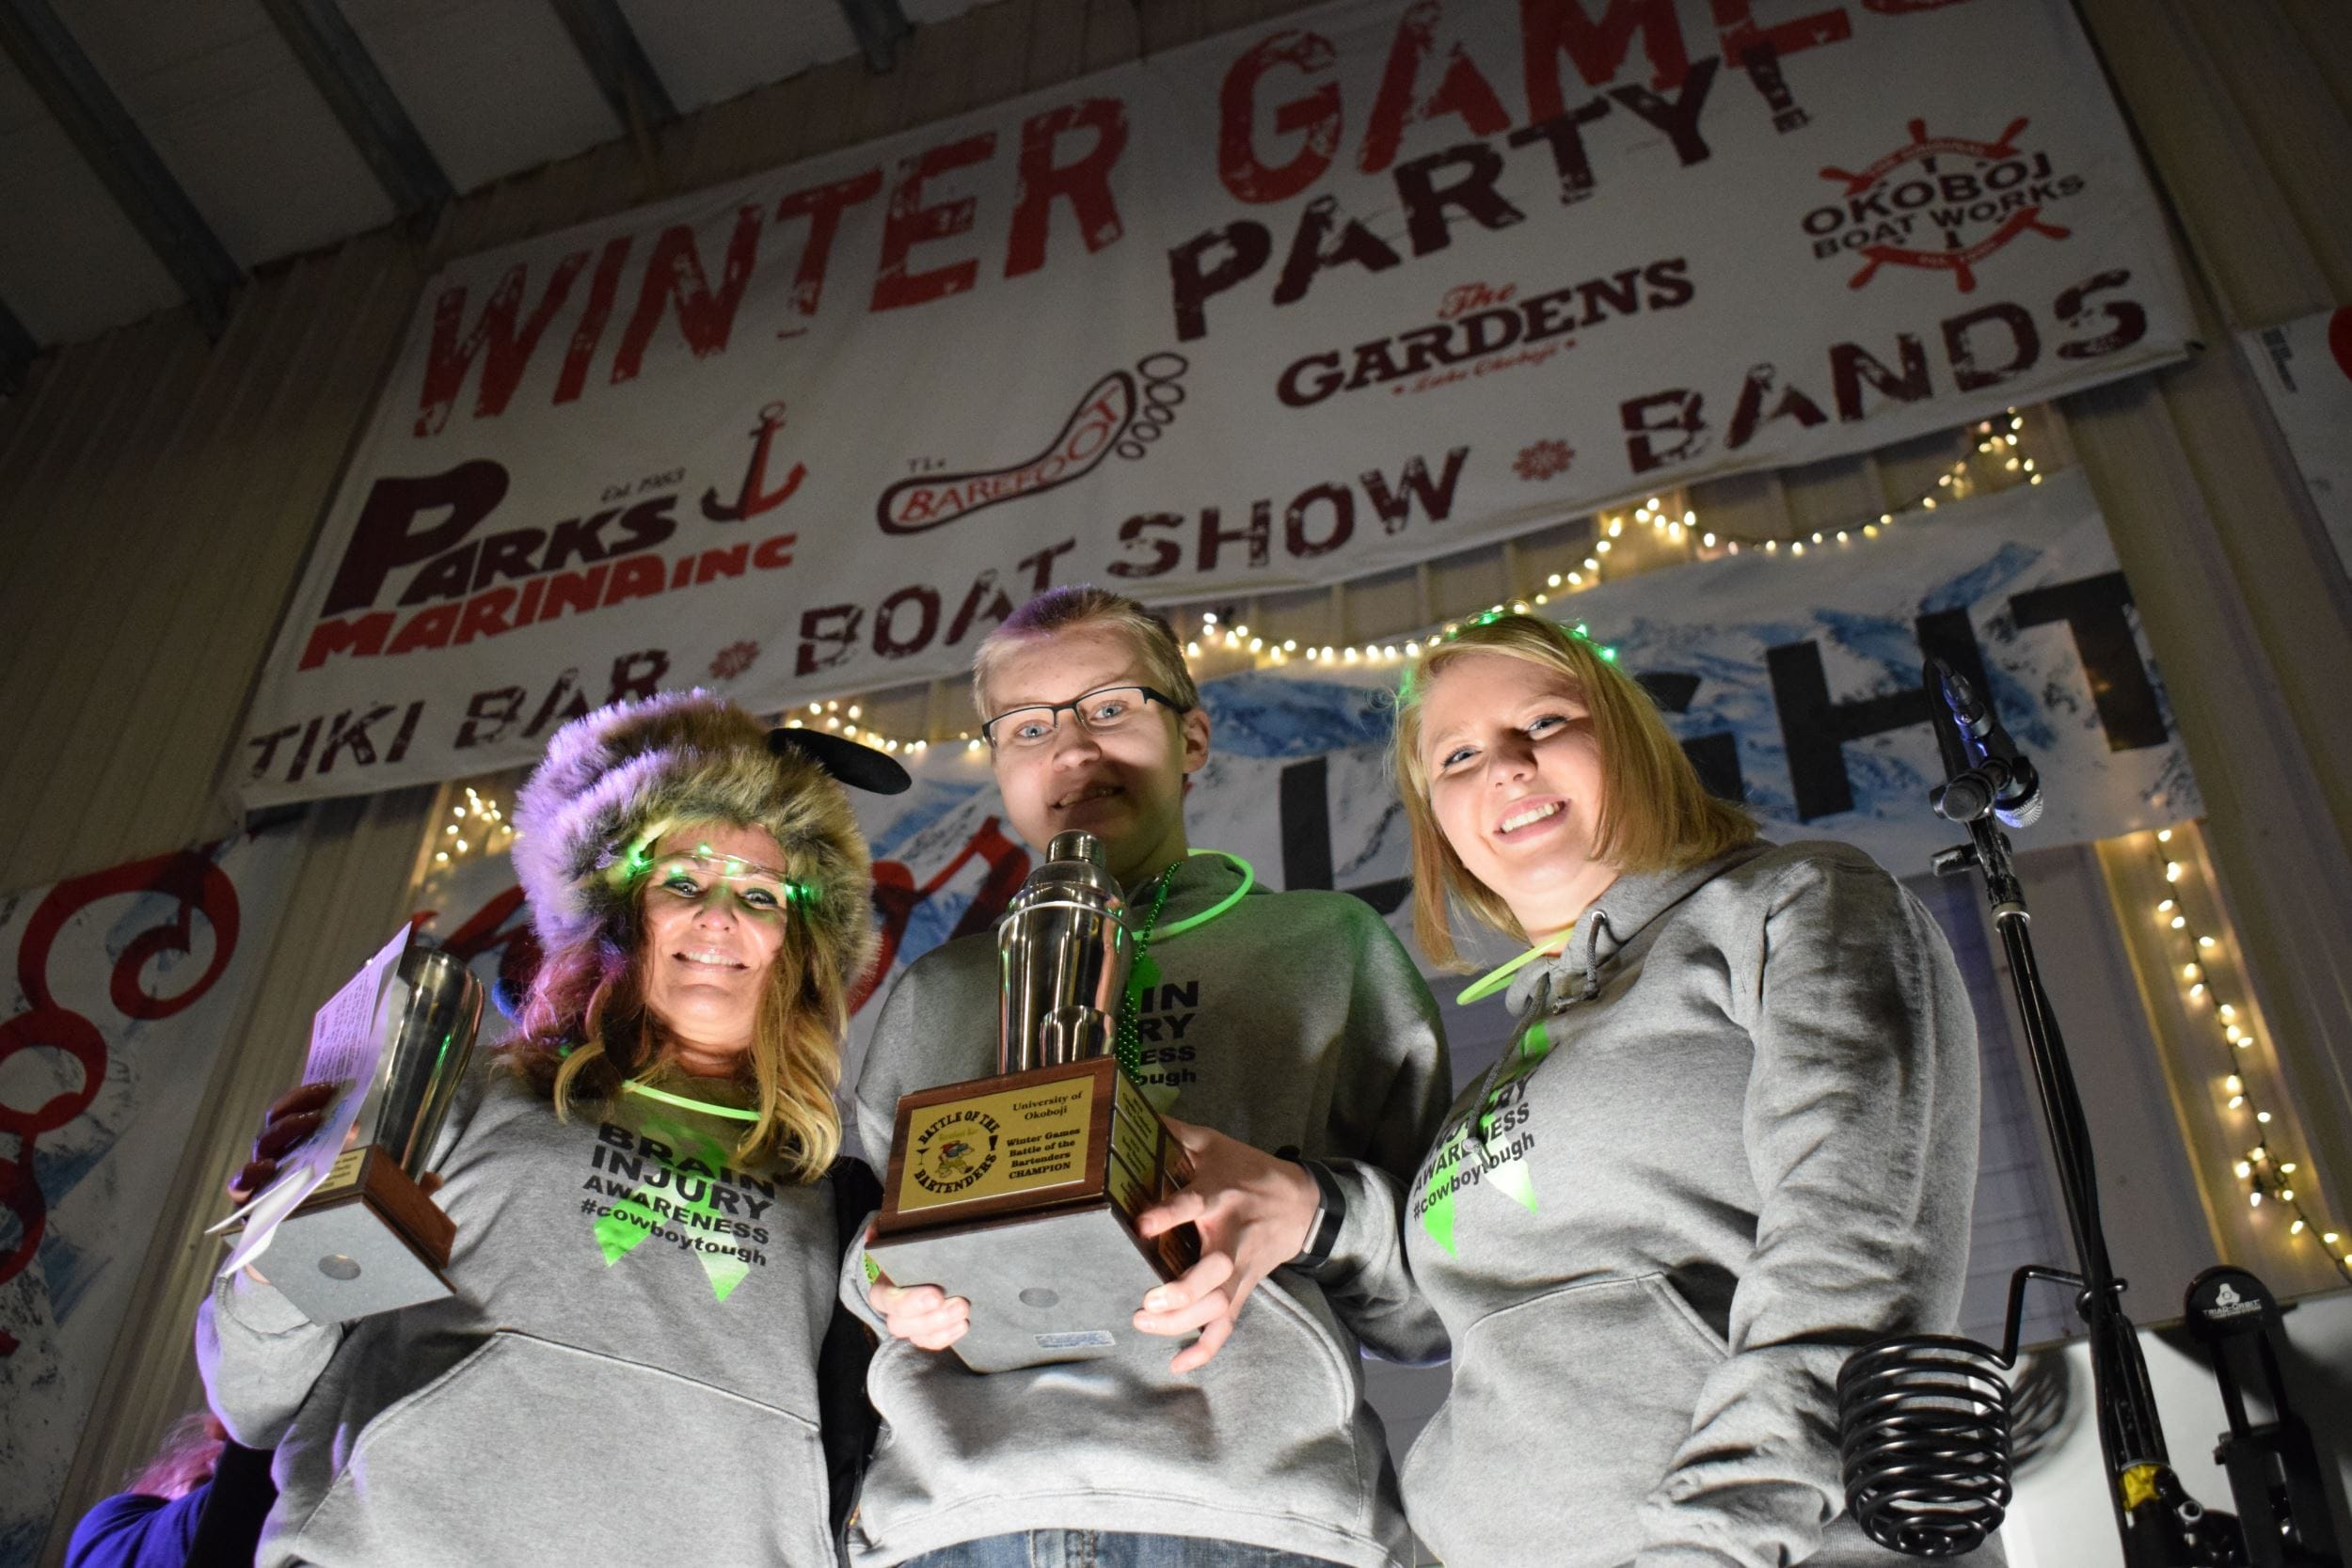 Parks Marina Winter Games events raise over $8,000 for area charities